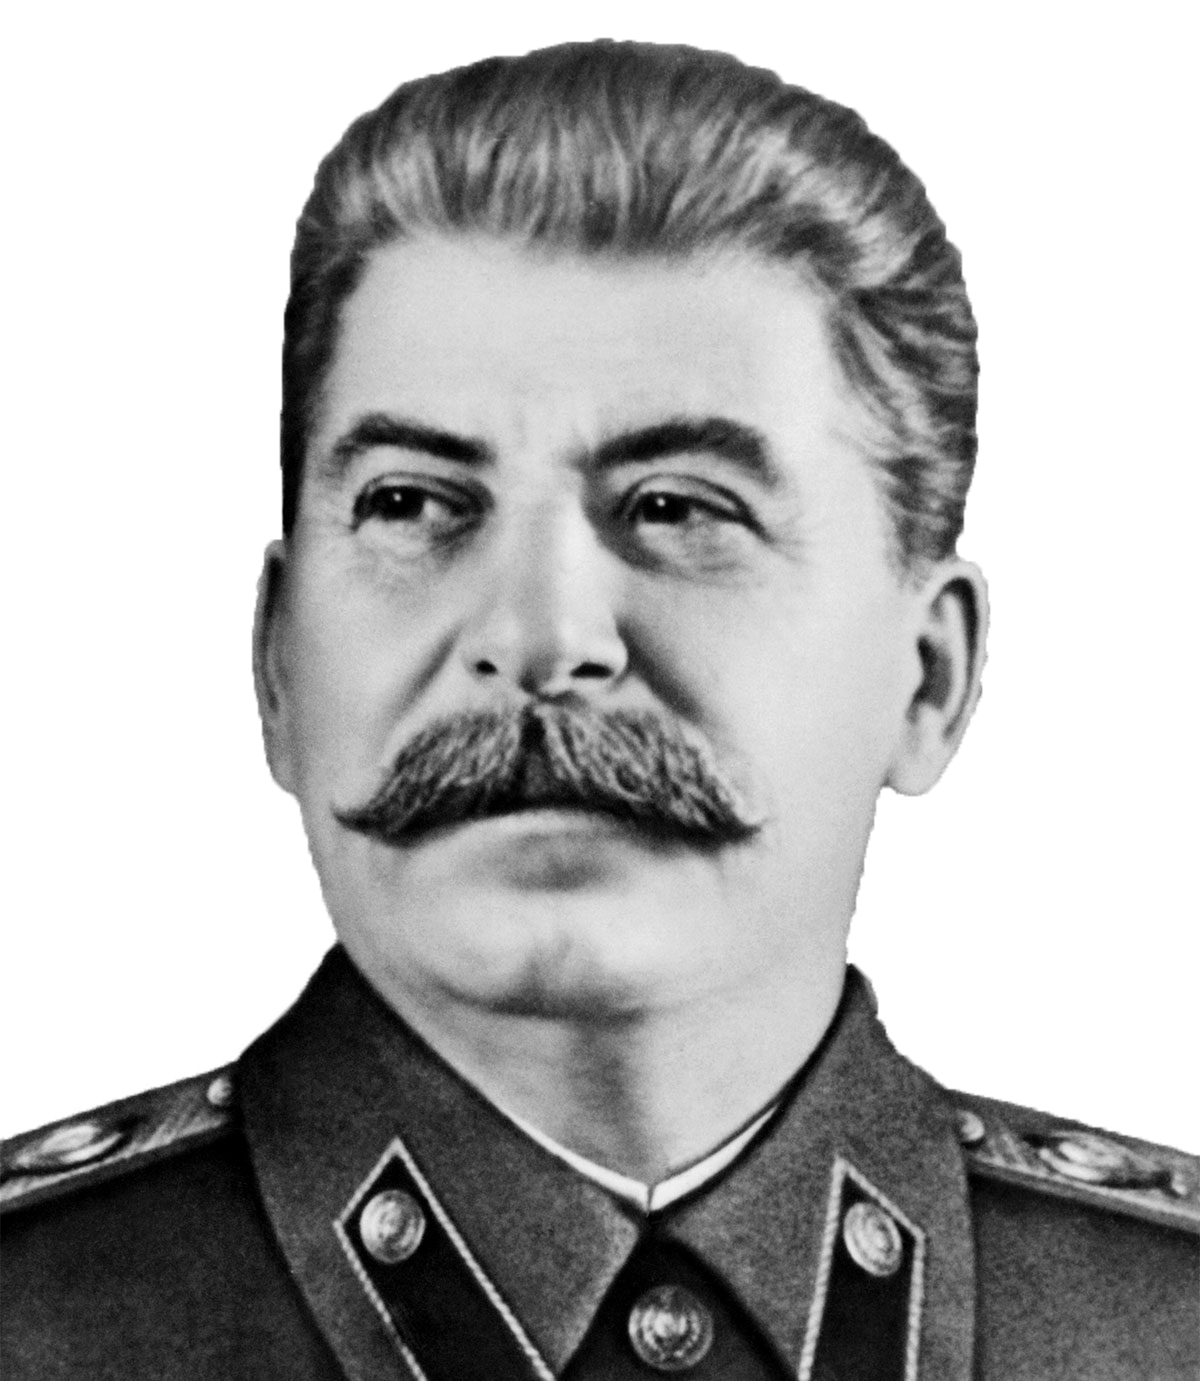 stalin laughing png